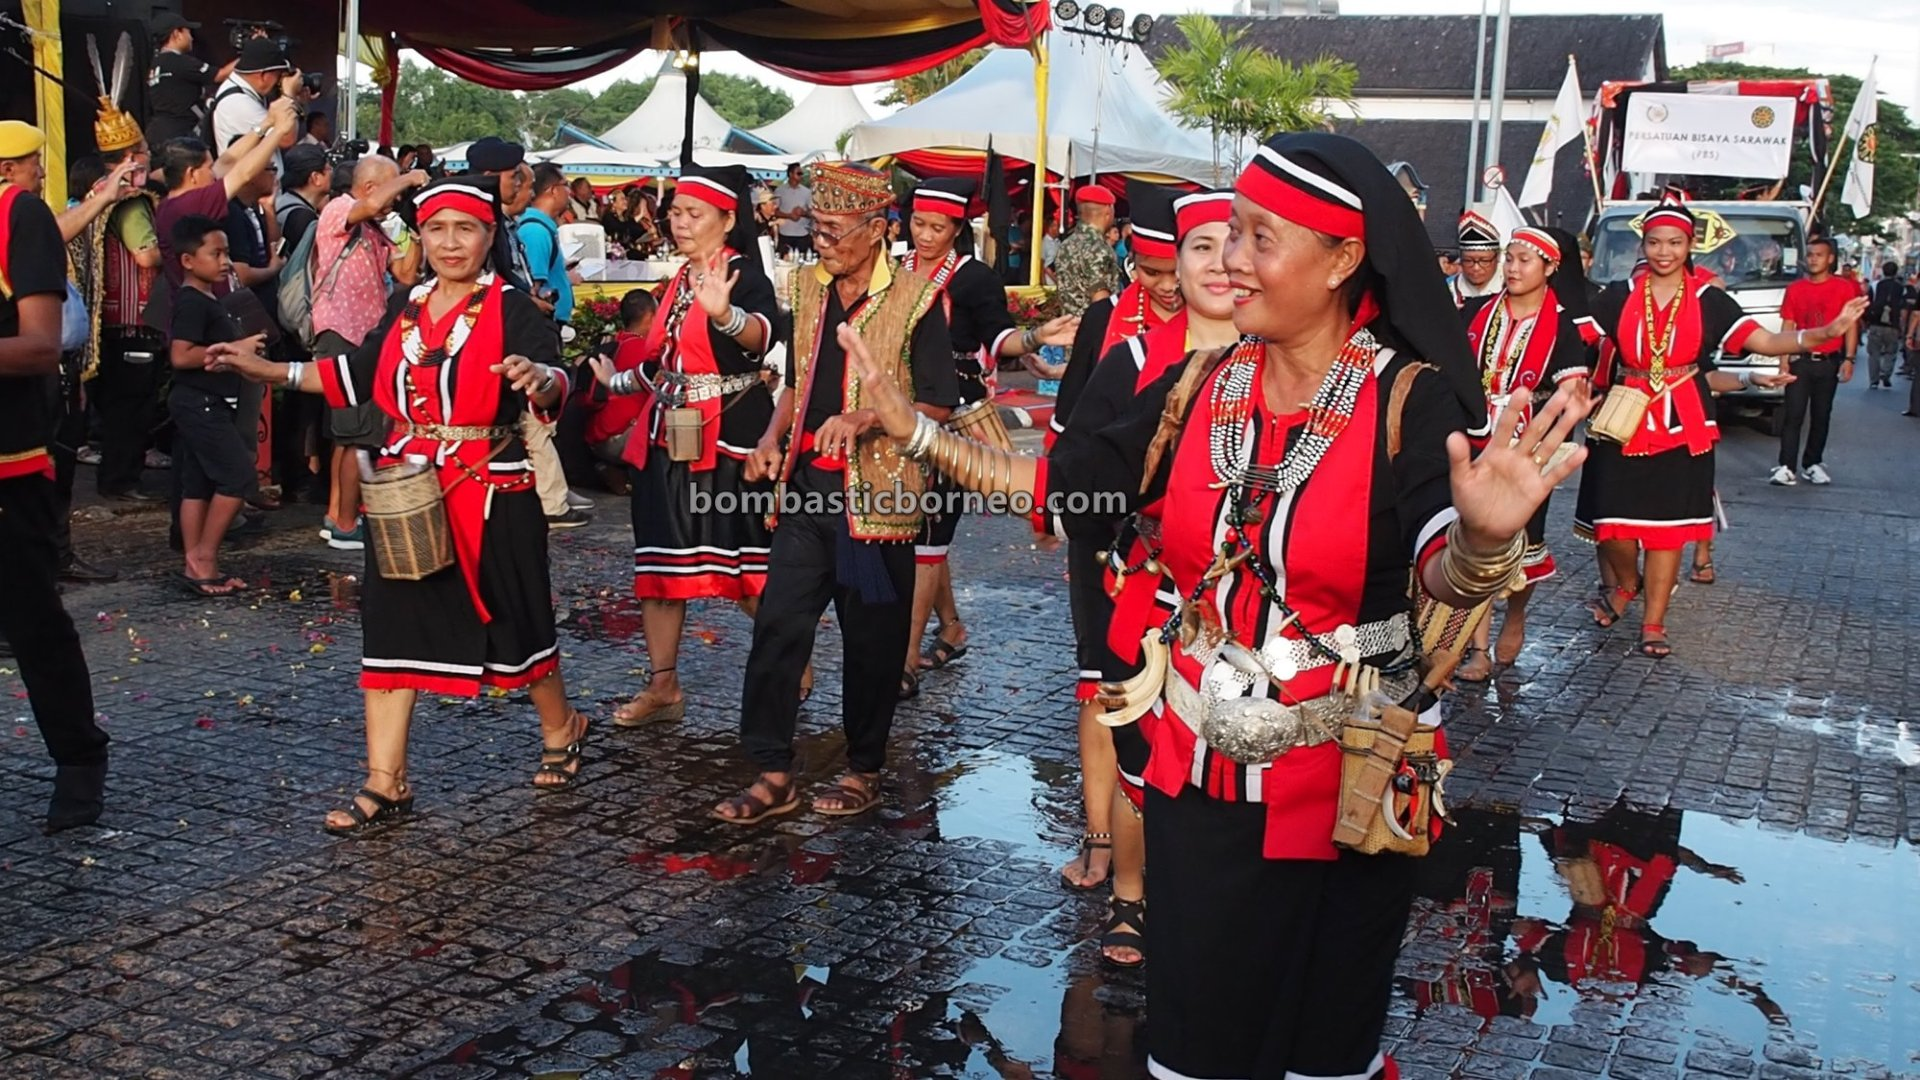 Gawai Parade, paddy harvest festival, traditional, budaya, destination, Ethnic, native, tourism, tourist attraction, Travel guide, Cross Border, Borneo, 婆罗洲丰收节日, 砂拉越原住民达雅克, 马来西亚土著文化,